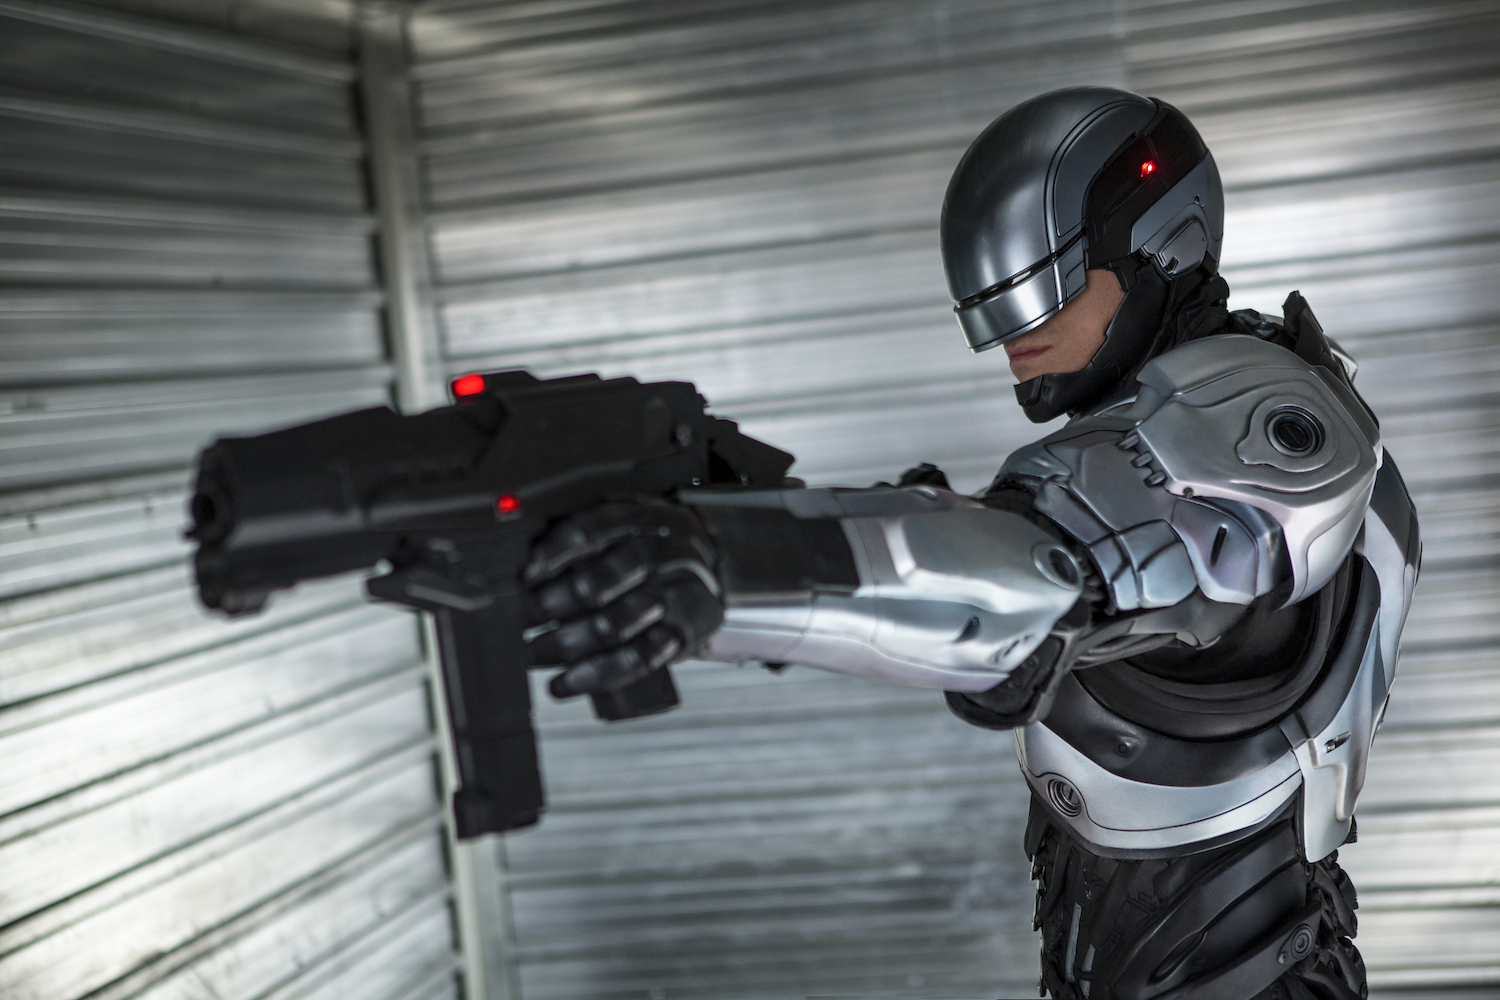 This Week In Movies: 'Robocop,' 'About Last Night' 'Endless Love'